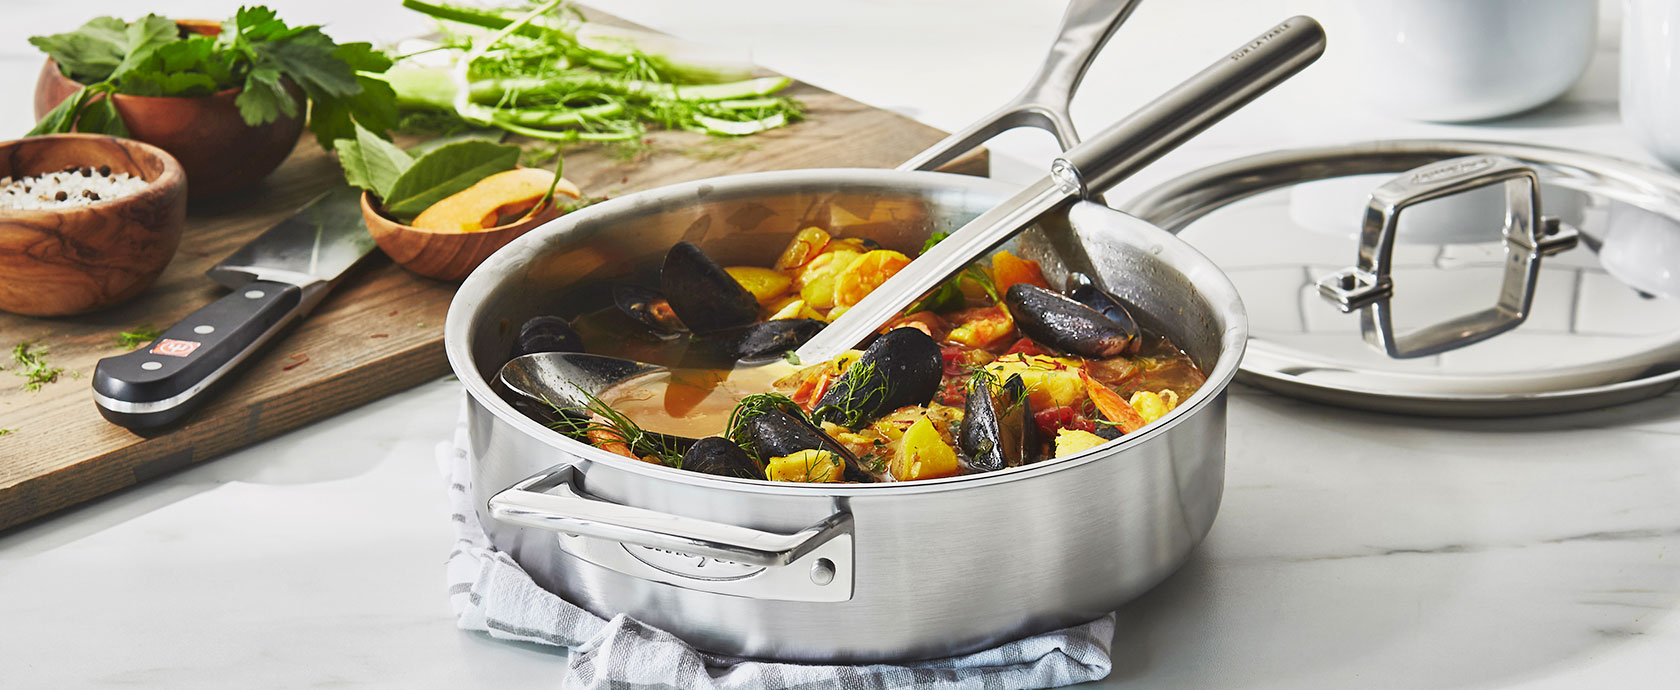 Demeyere deep saute pan with mussels